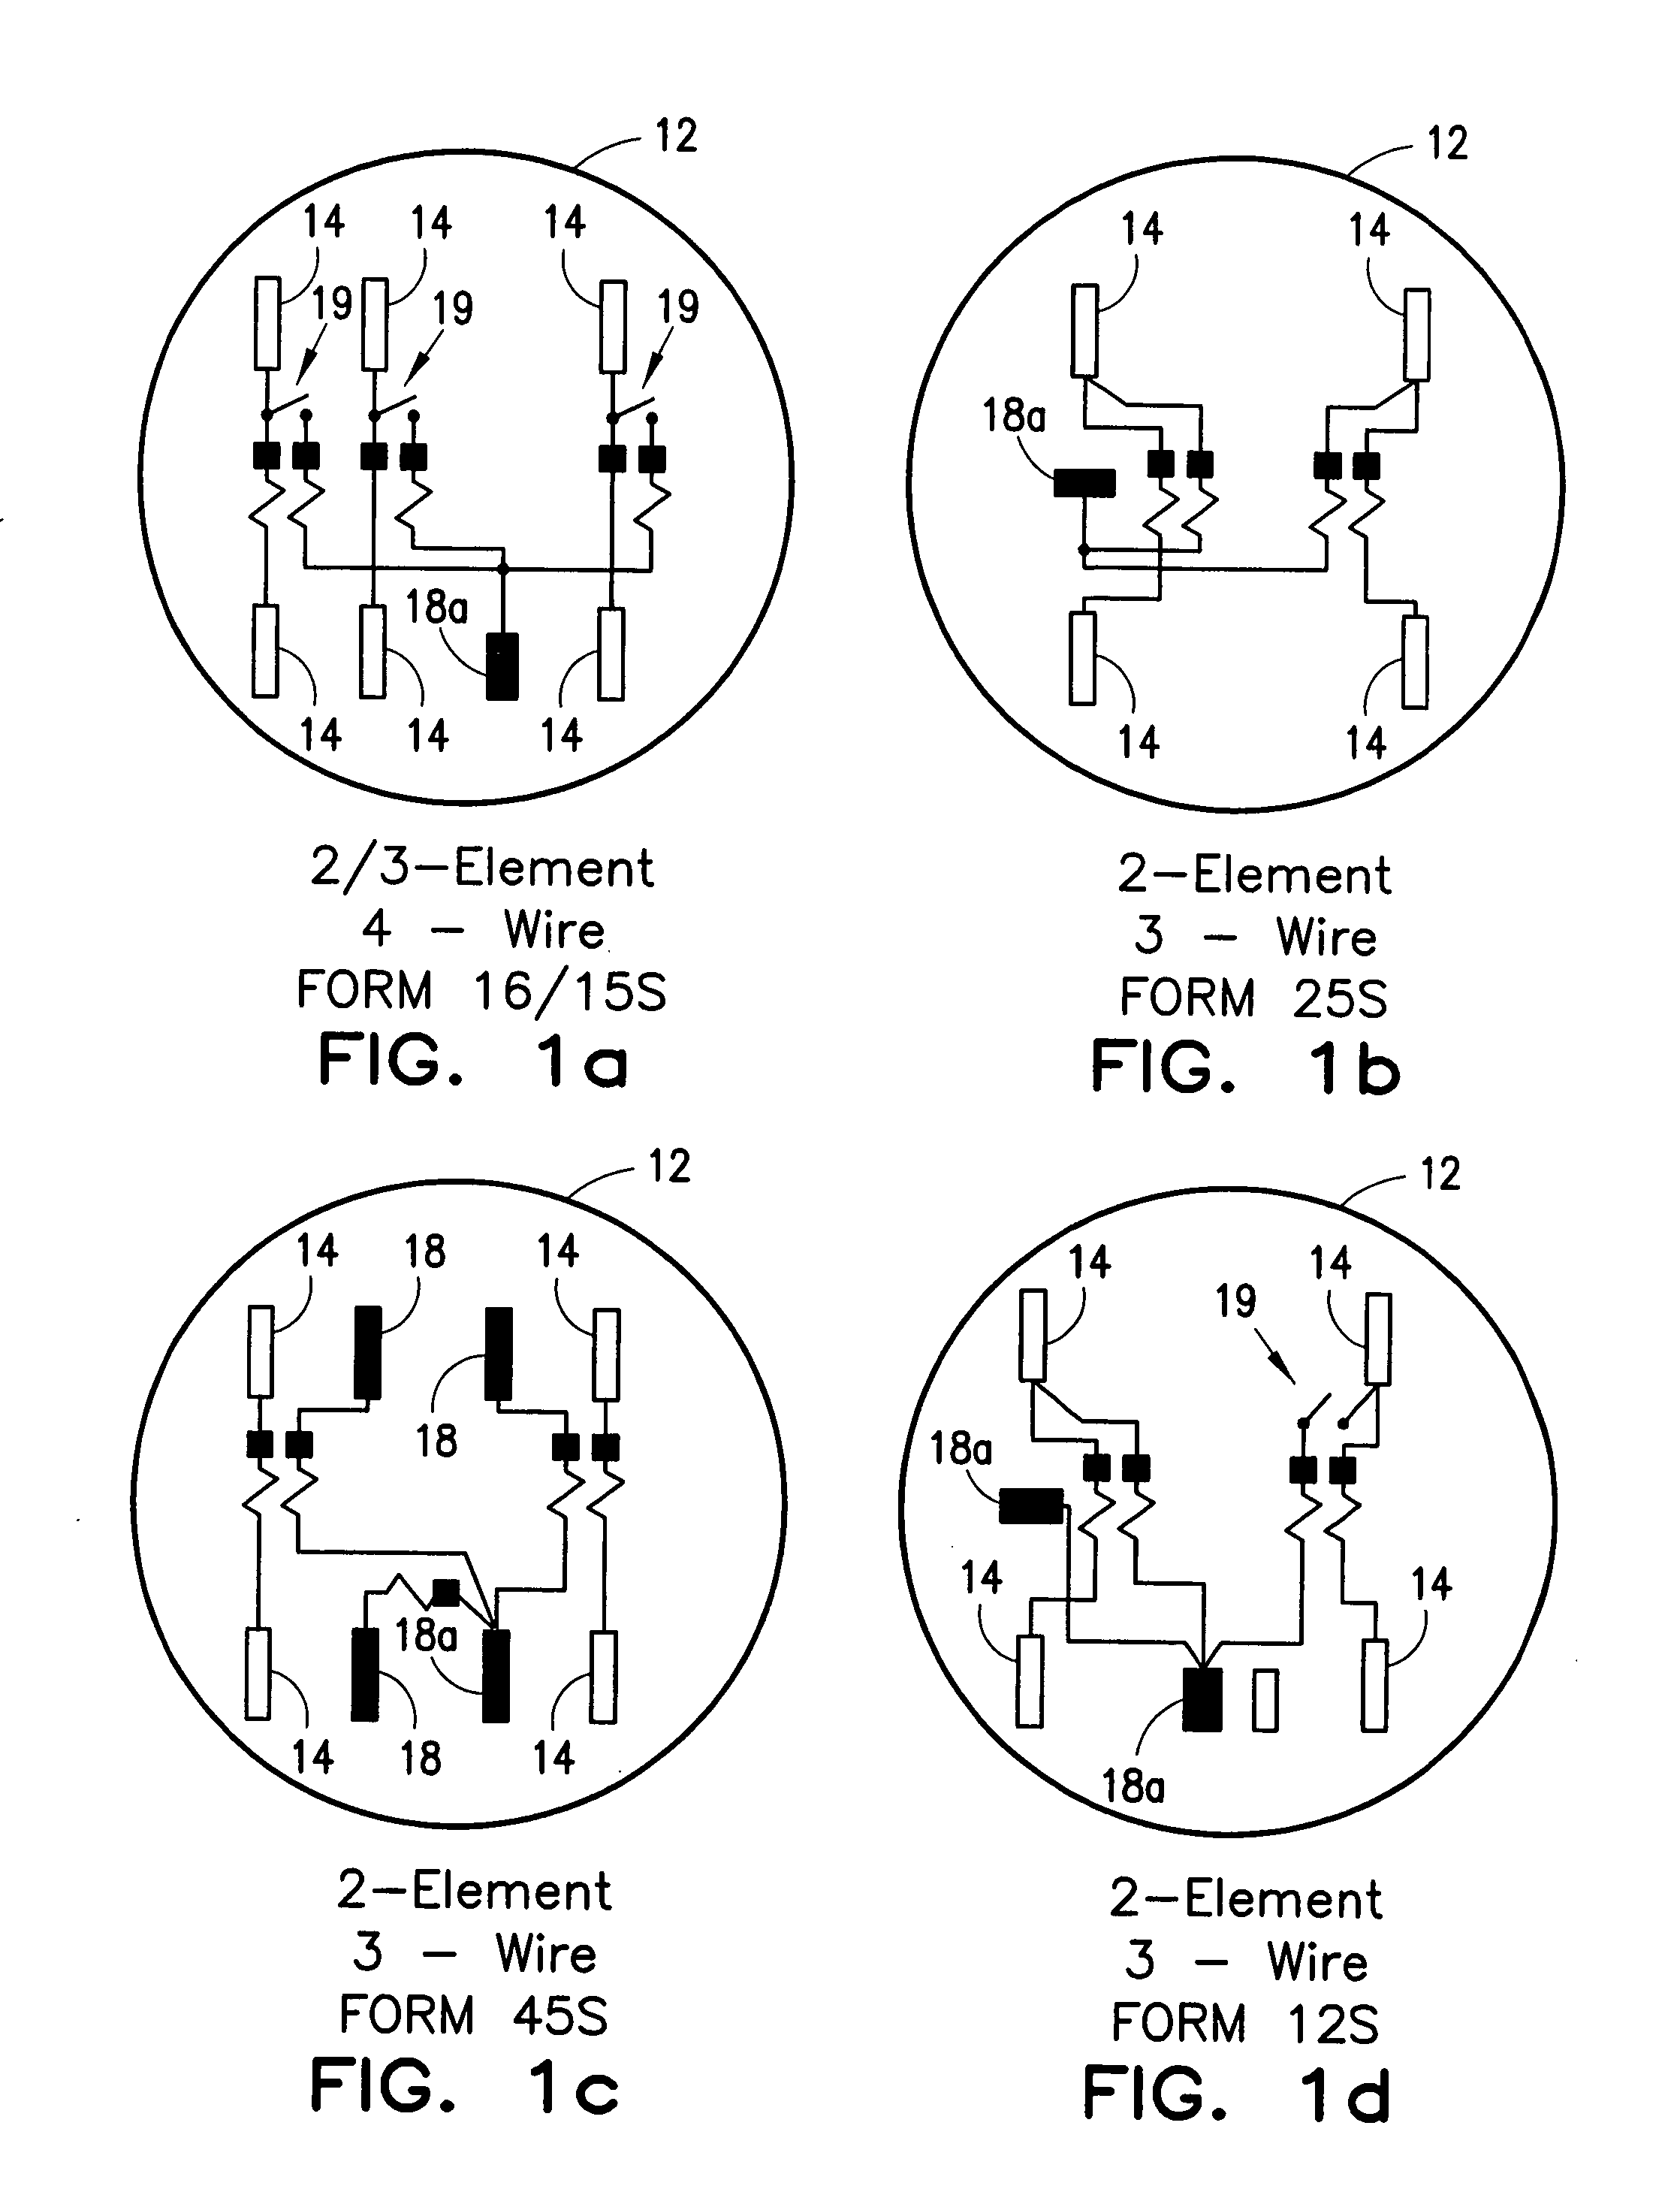 Meter Pedestal Wiring Diagrams Diagram Base Unique 4 Wire Sketch Ideas Awesome Illustration